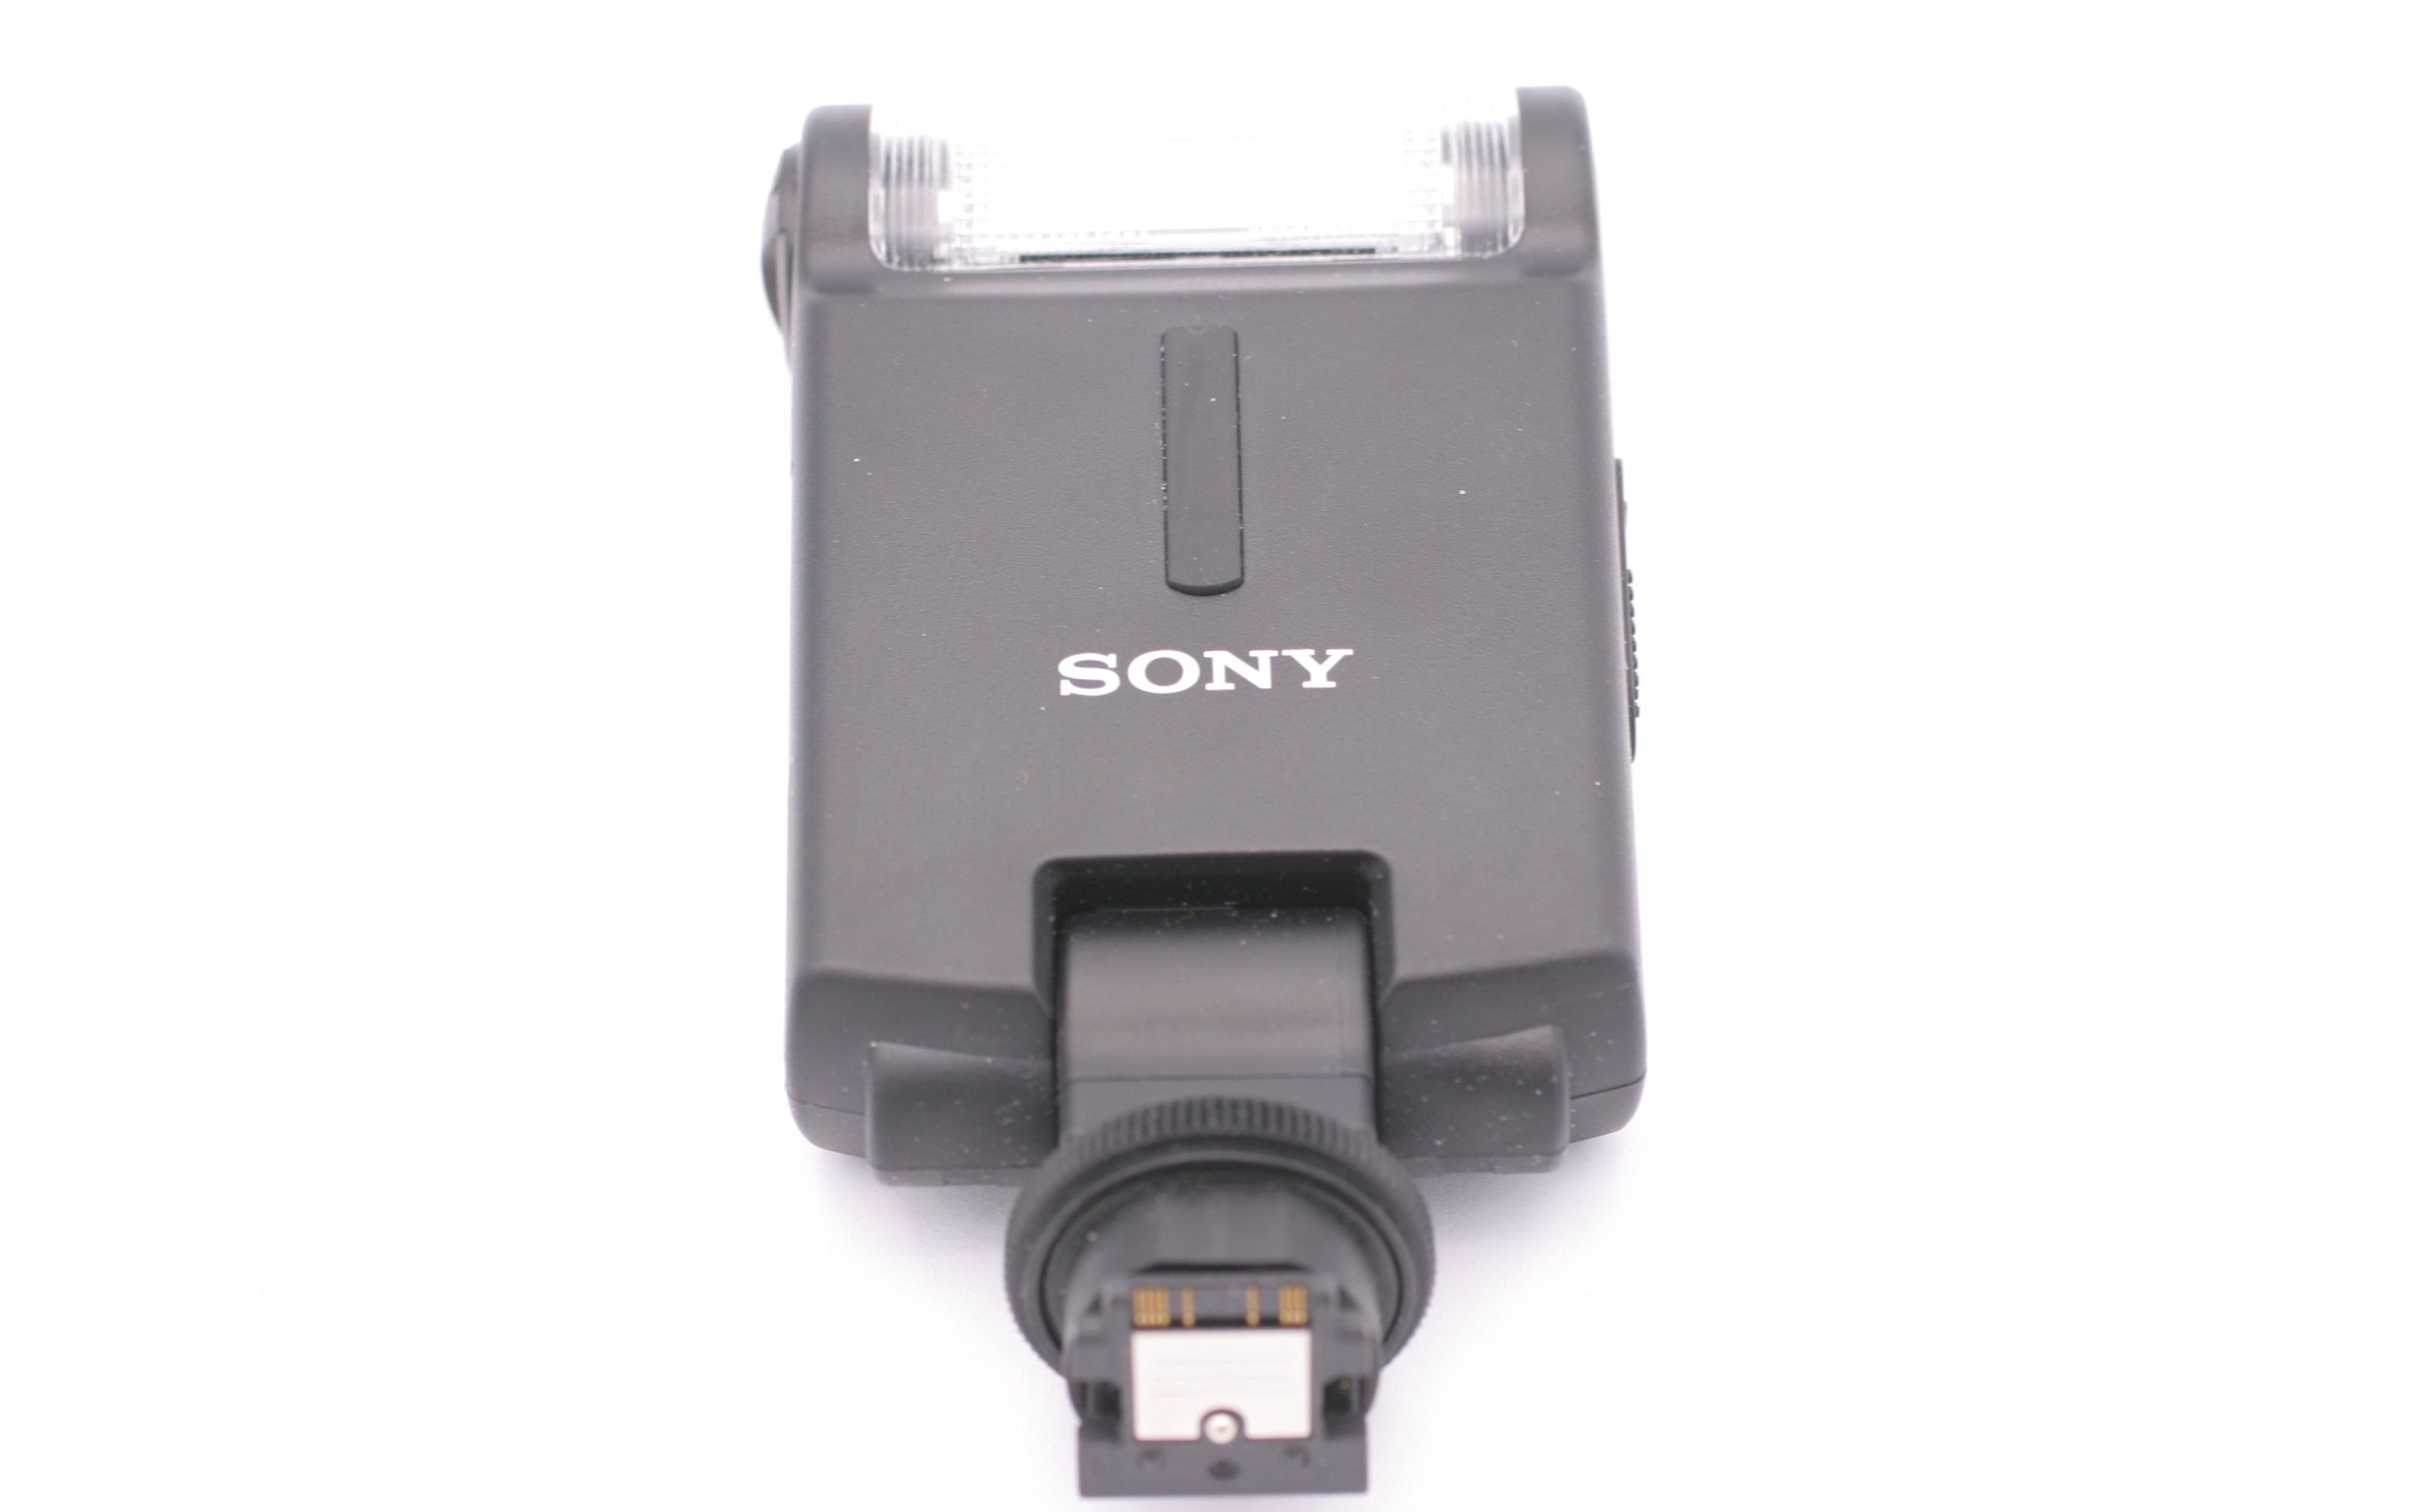 Sony HVL-F20M External Shoe Mount Flash for Sony Cameras